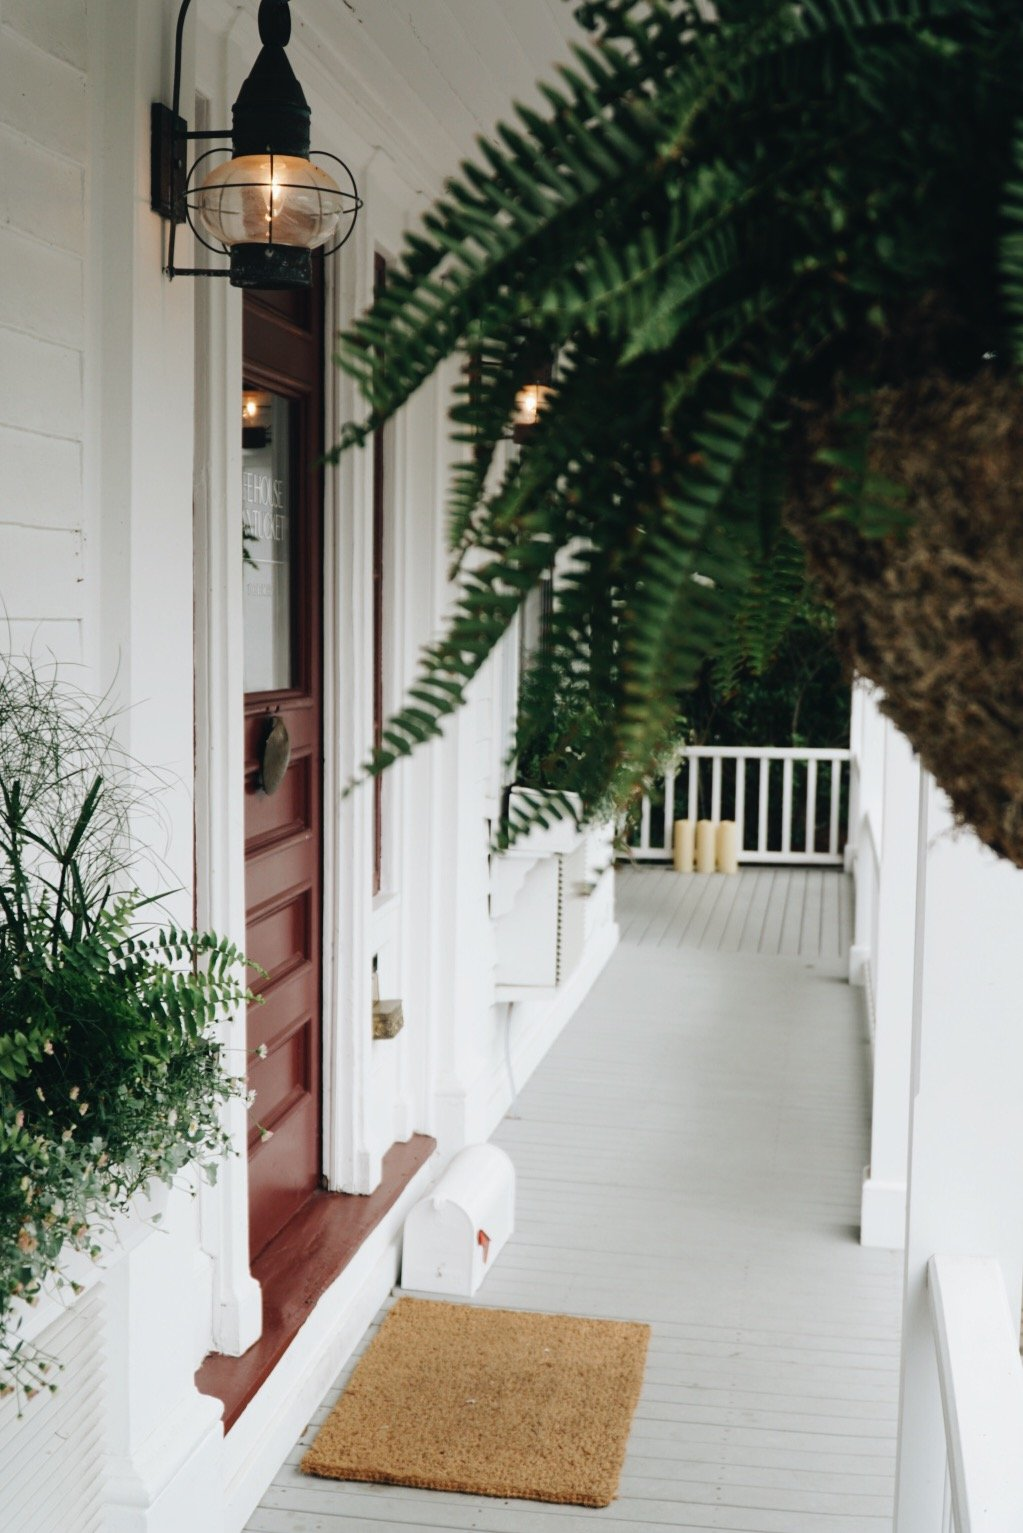 Life House hotel in Nantucket